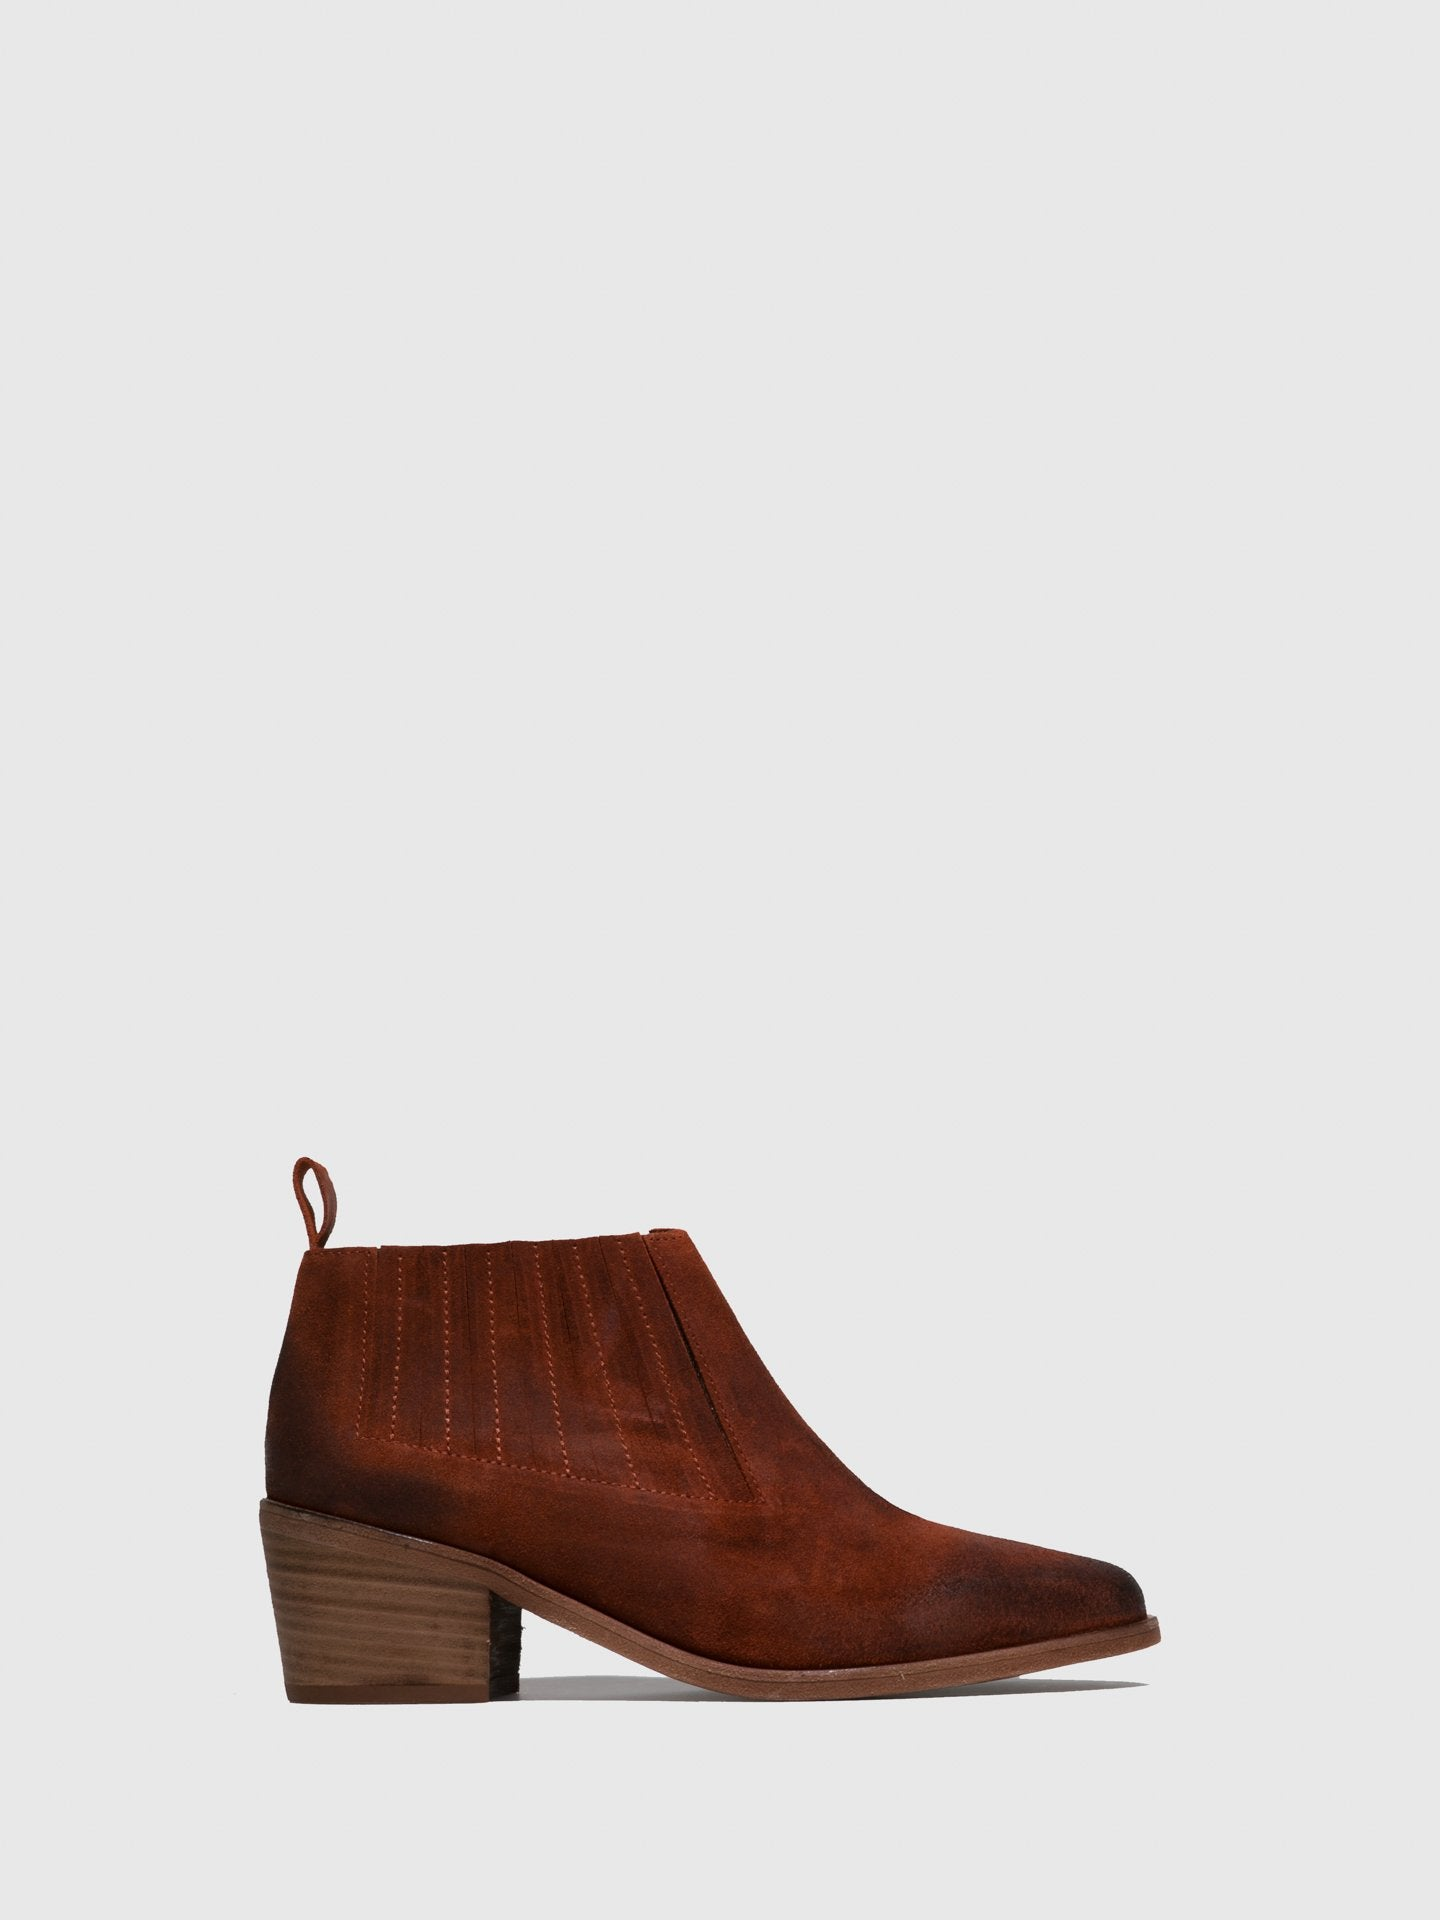 Only2me Camel Elasticated Ankle Boots